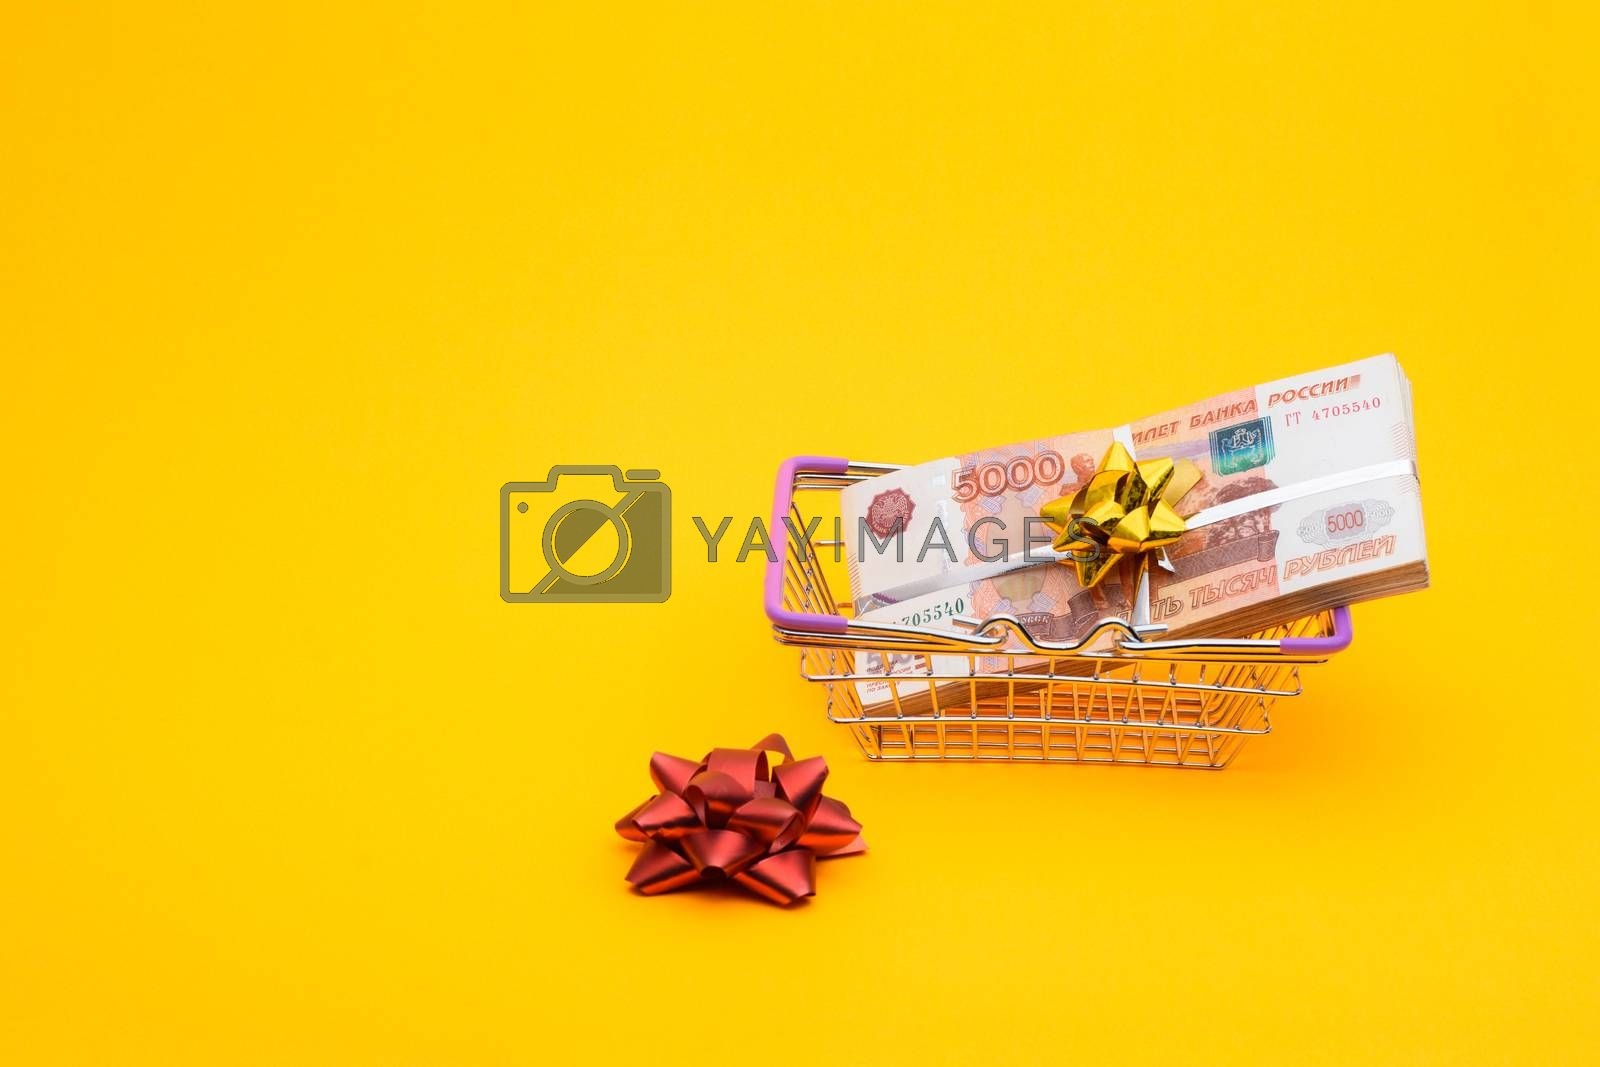 In the grocery basket is a bundle of five thousandth bills, next to it is a red bow